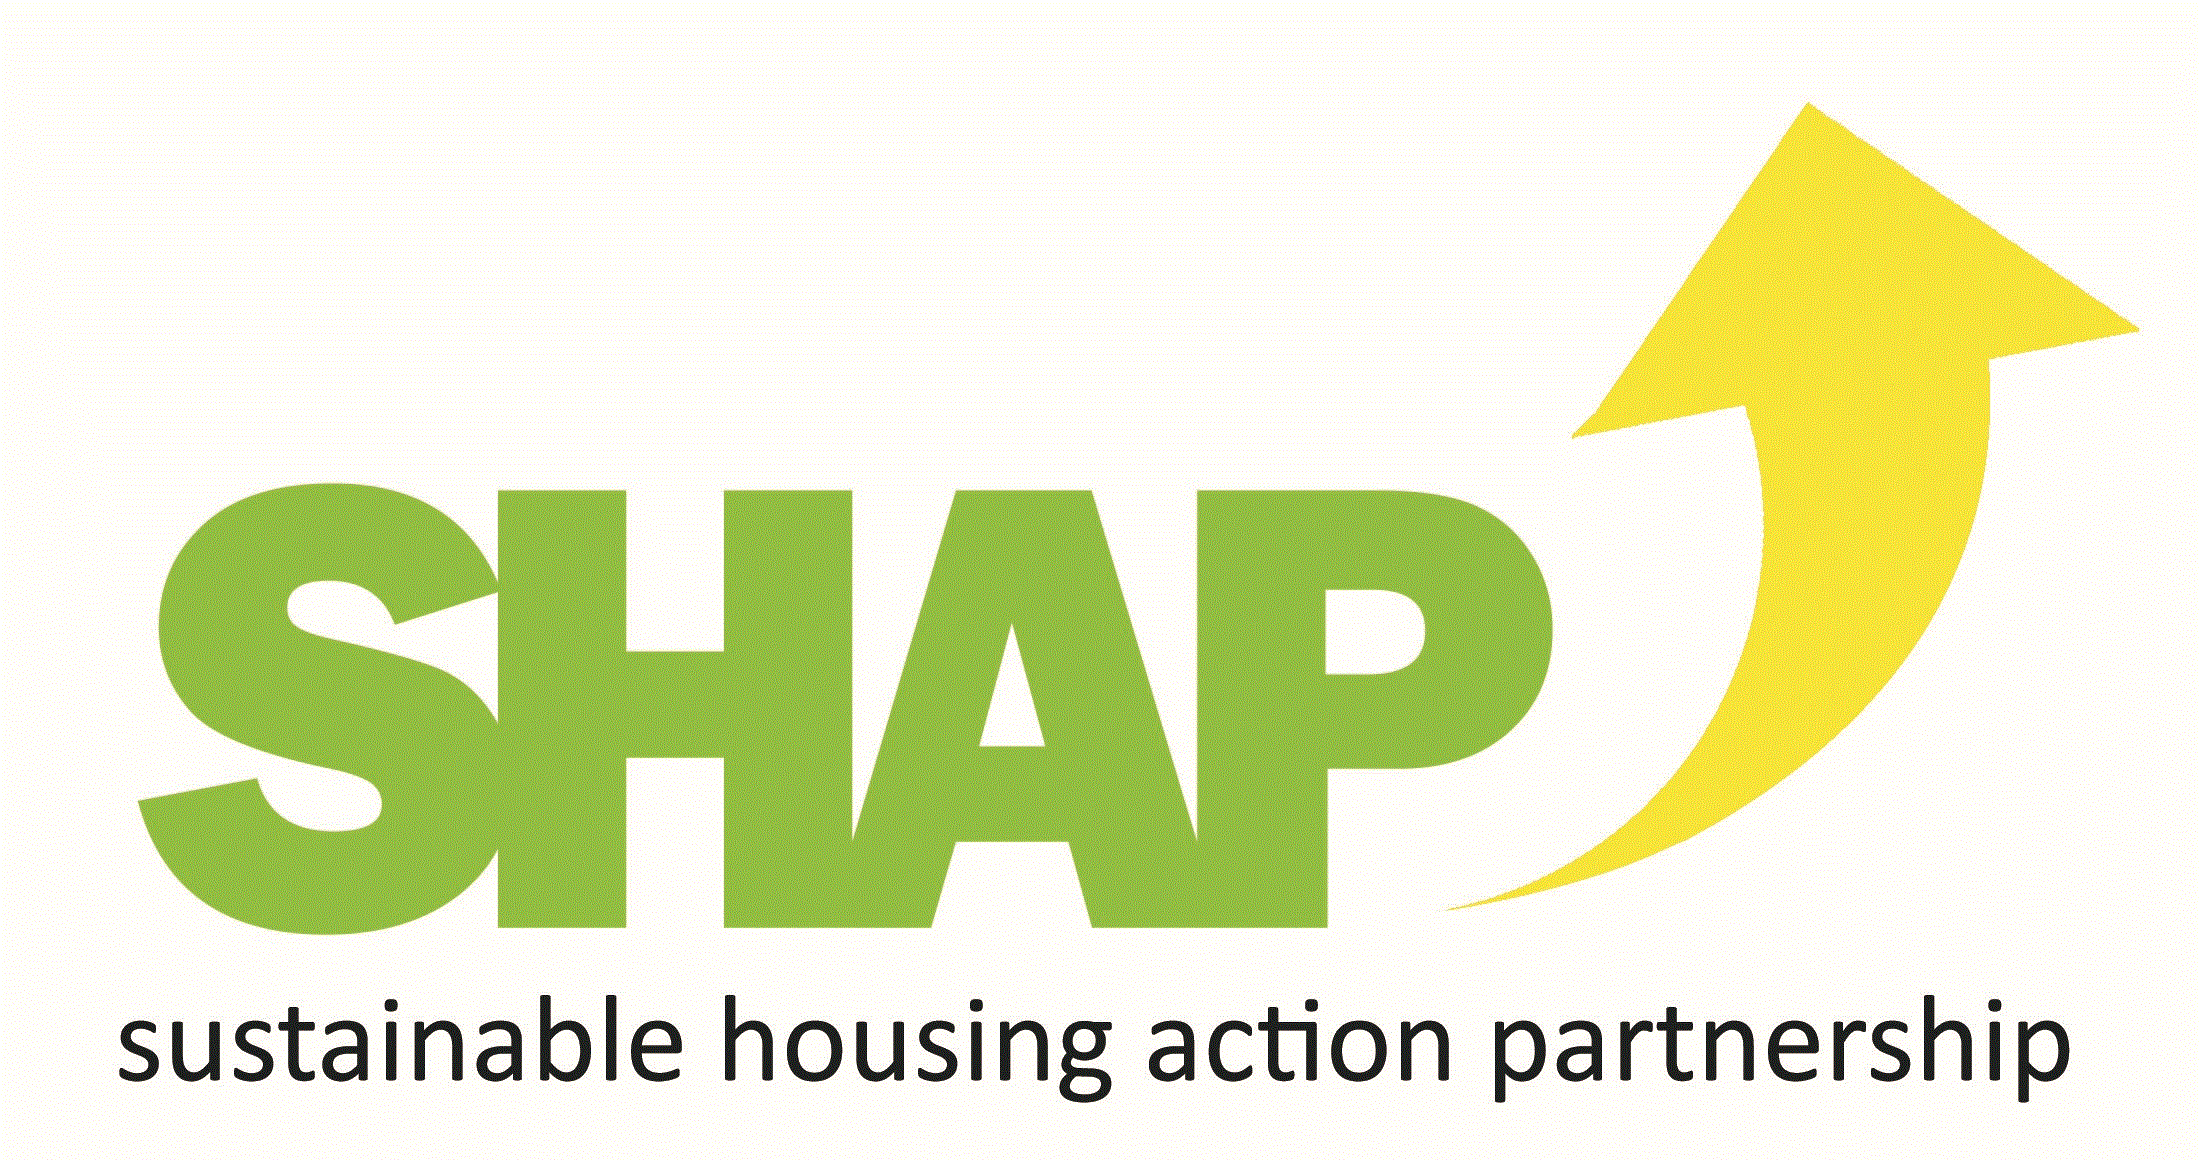 SHAP Sustainable Housing Action Partnership